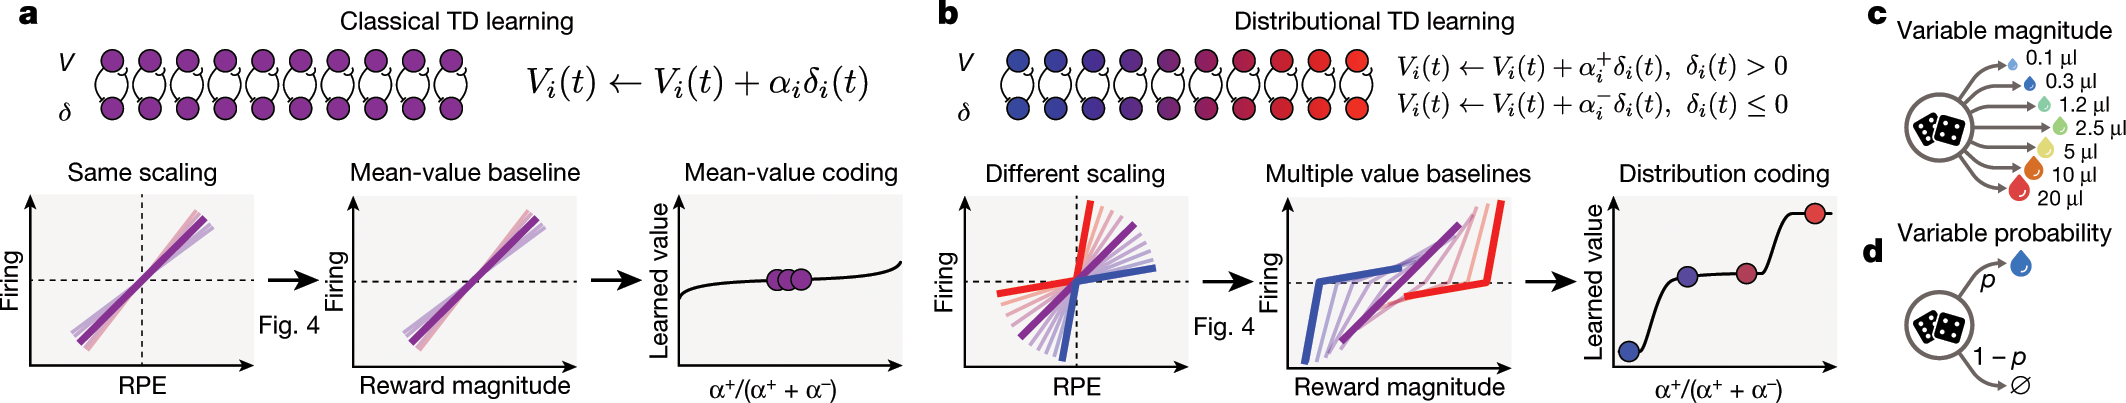 A distributional code for value in dopamine-based reinforcement learni